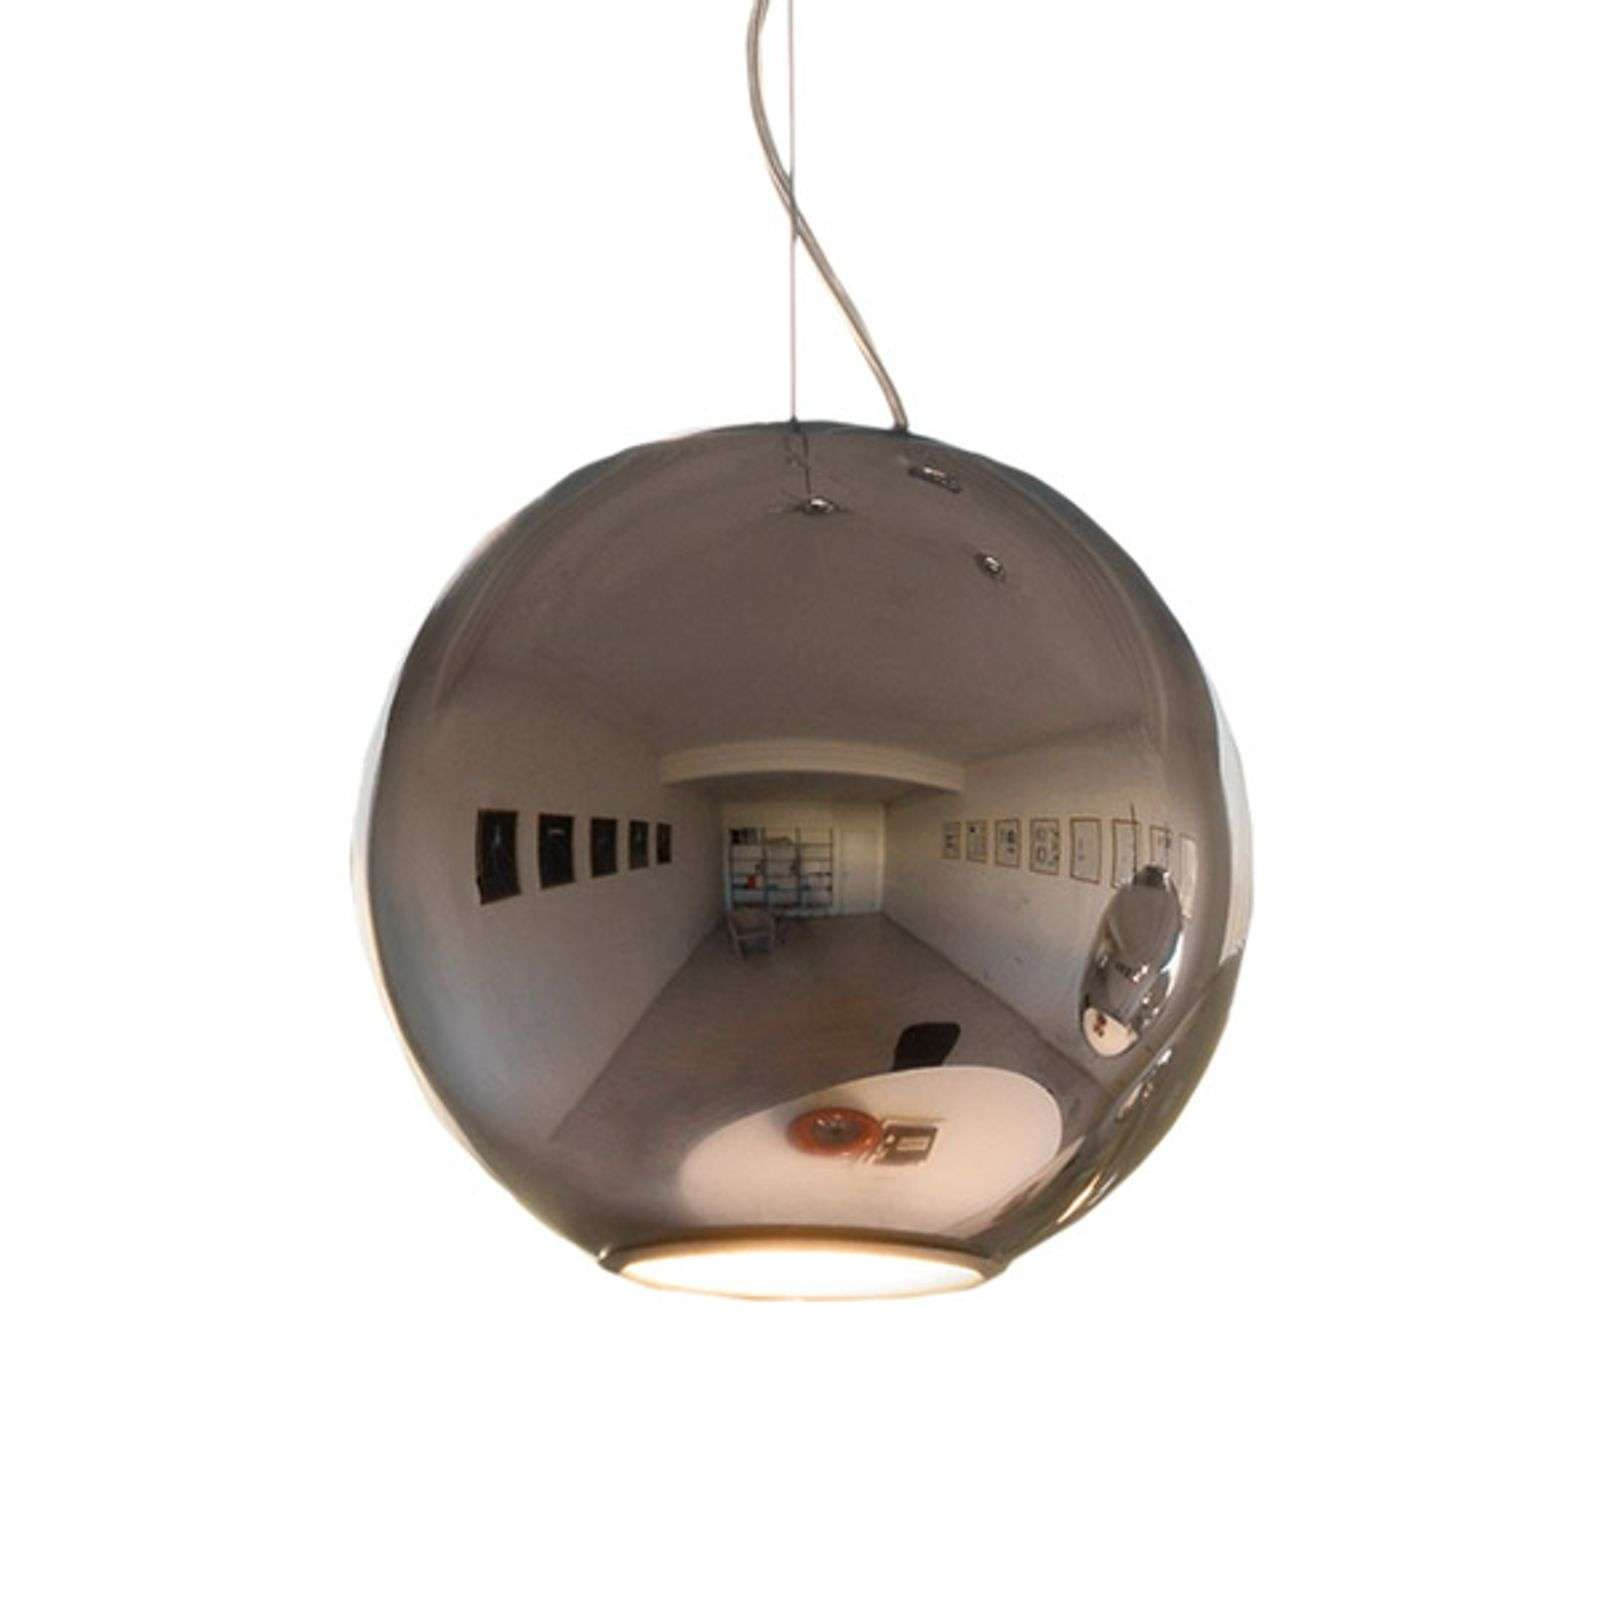 Suspension design GLOBO DI LUCE 20 cm